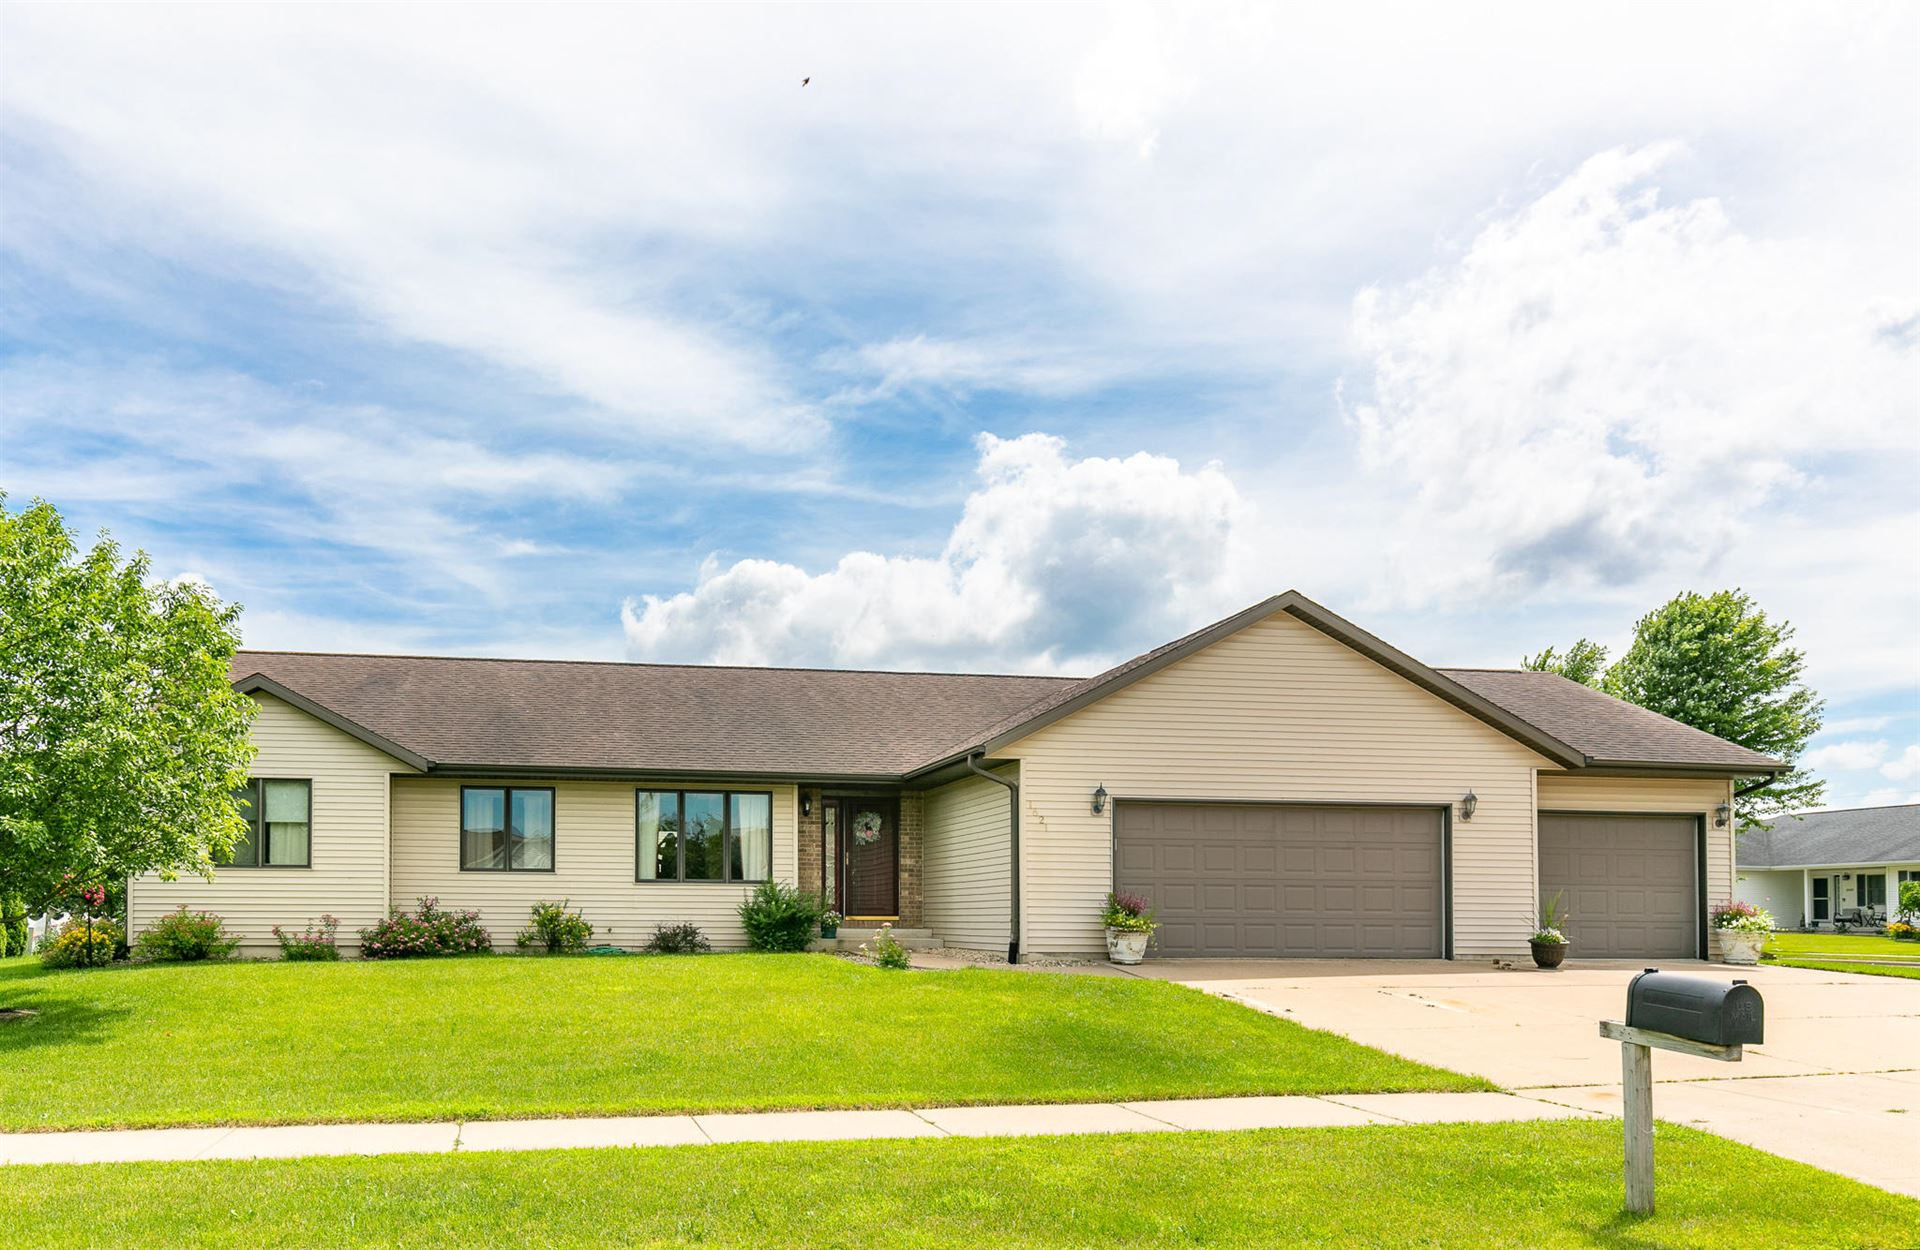 1621 Cliffview Ave, Onalaska, WI 54650 - #: 1696812